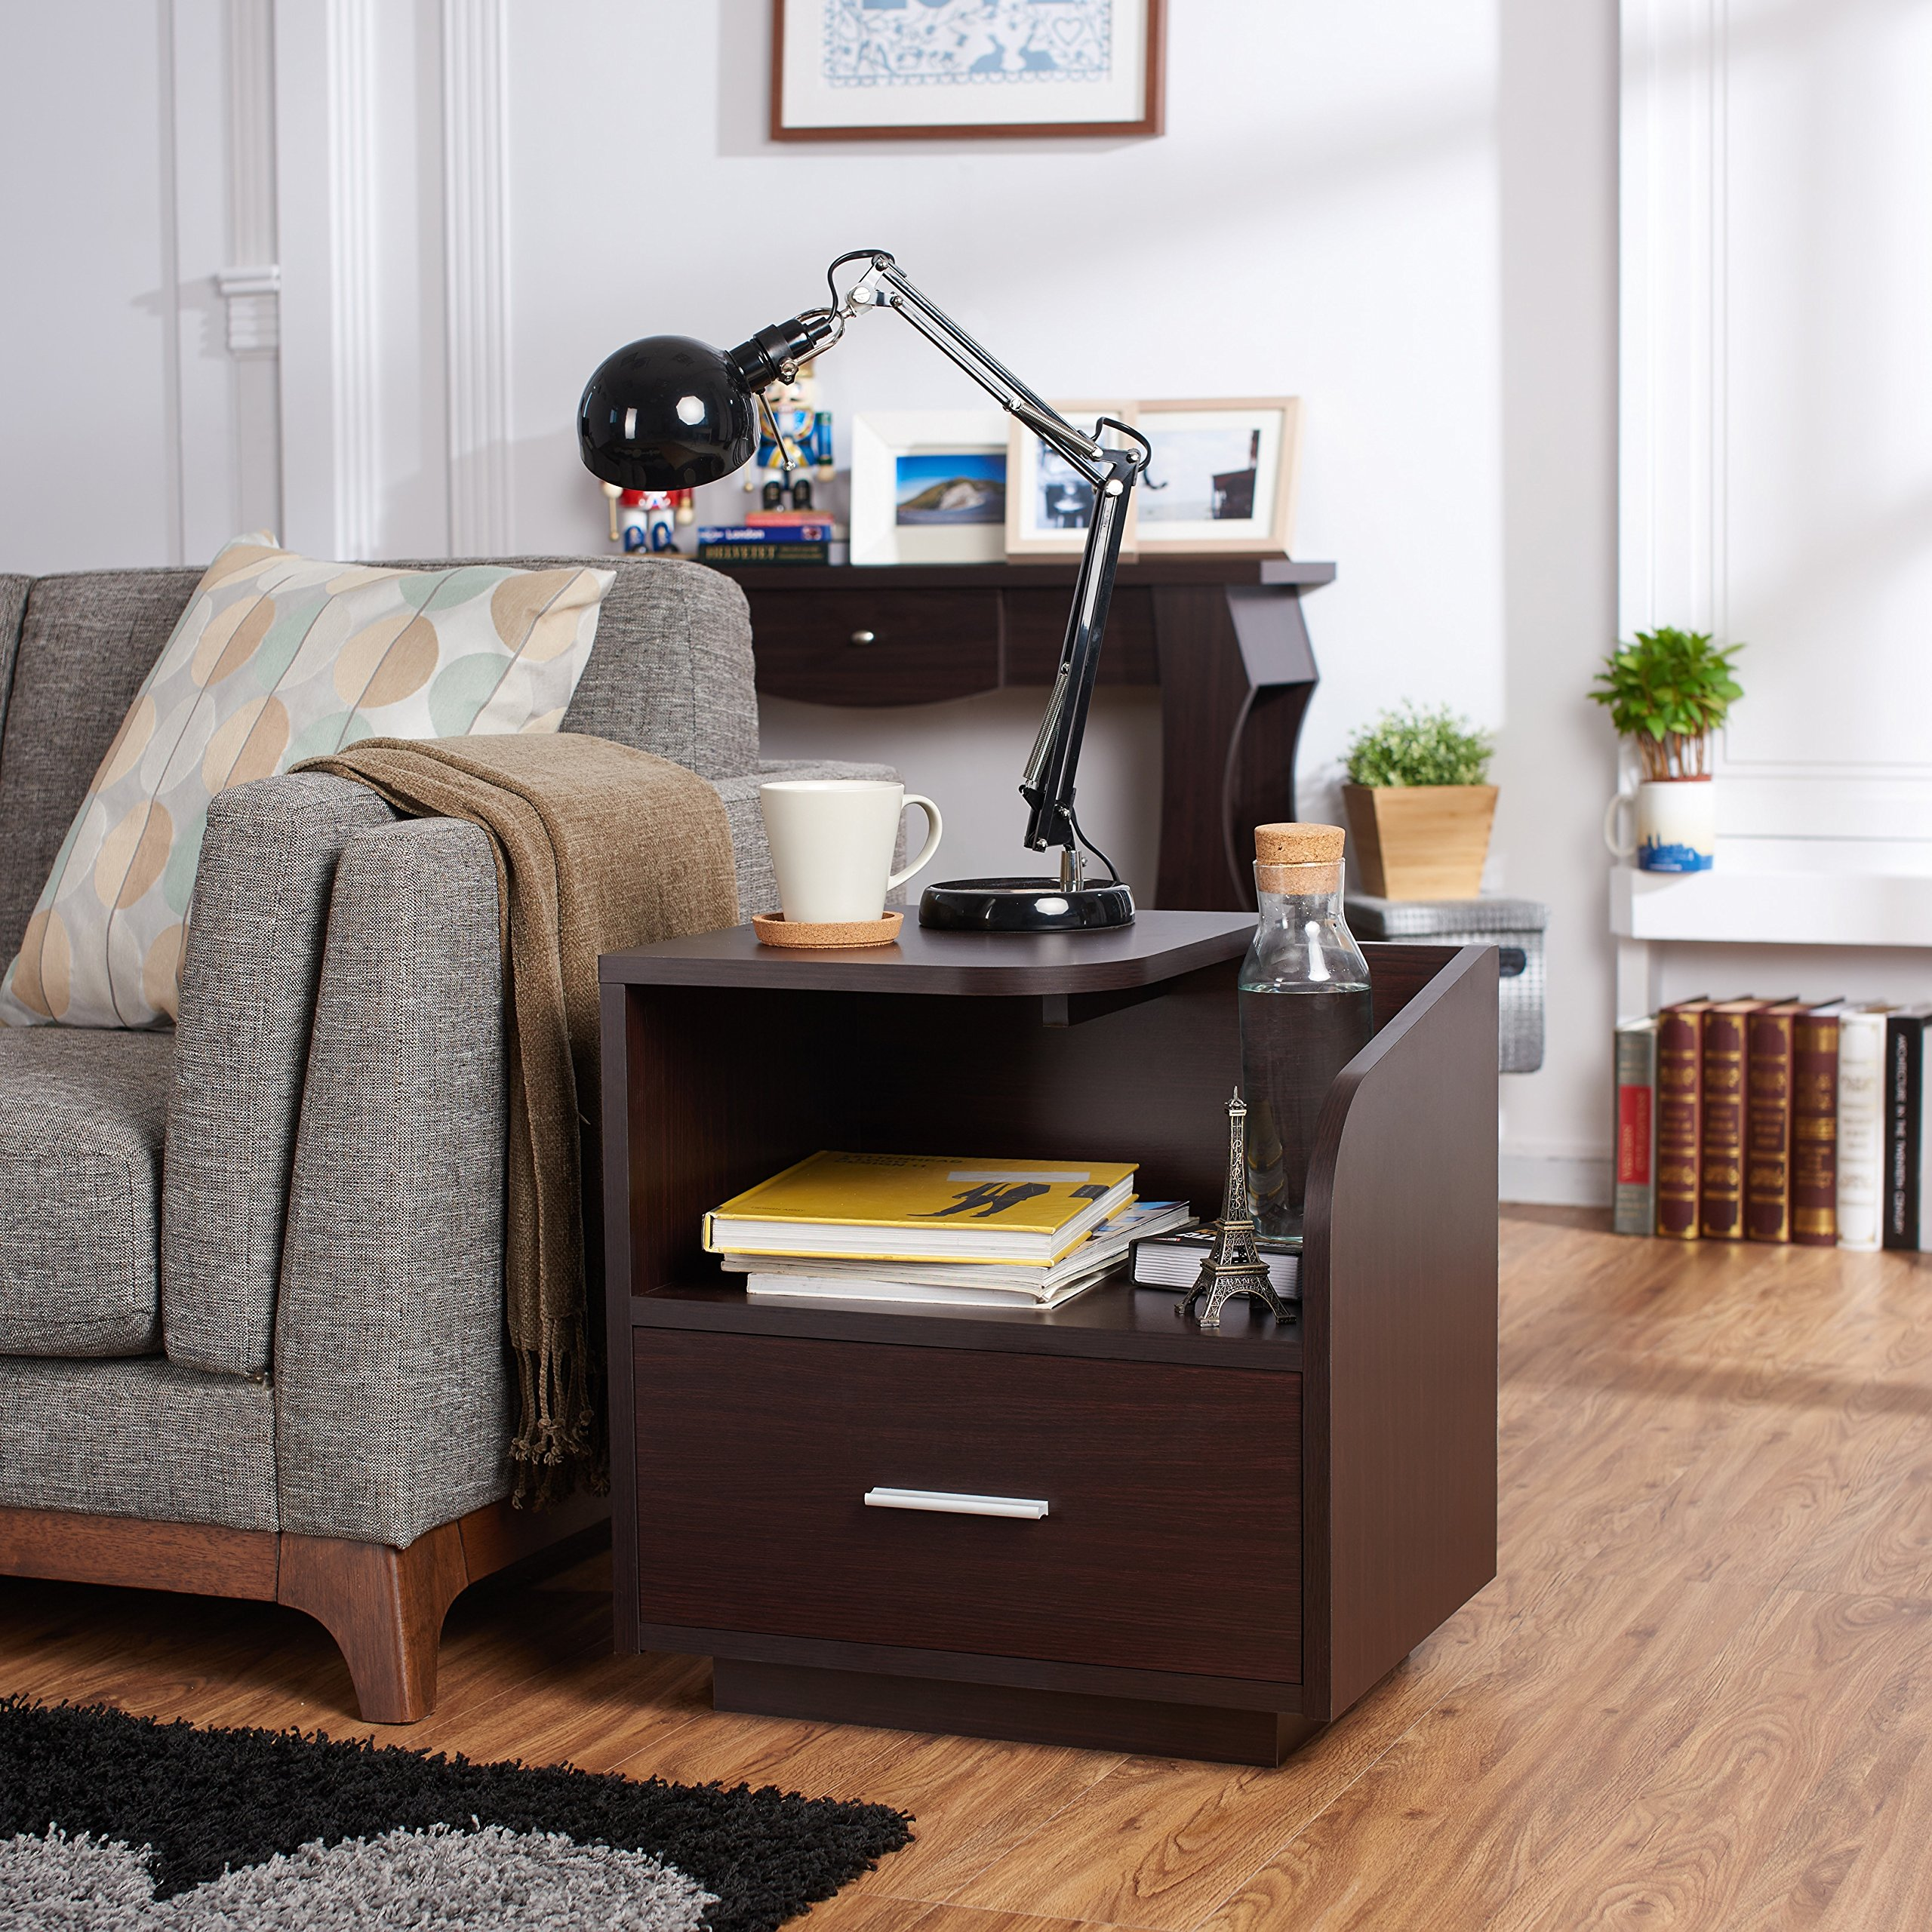 Furniture of America Corven Modern End Table